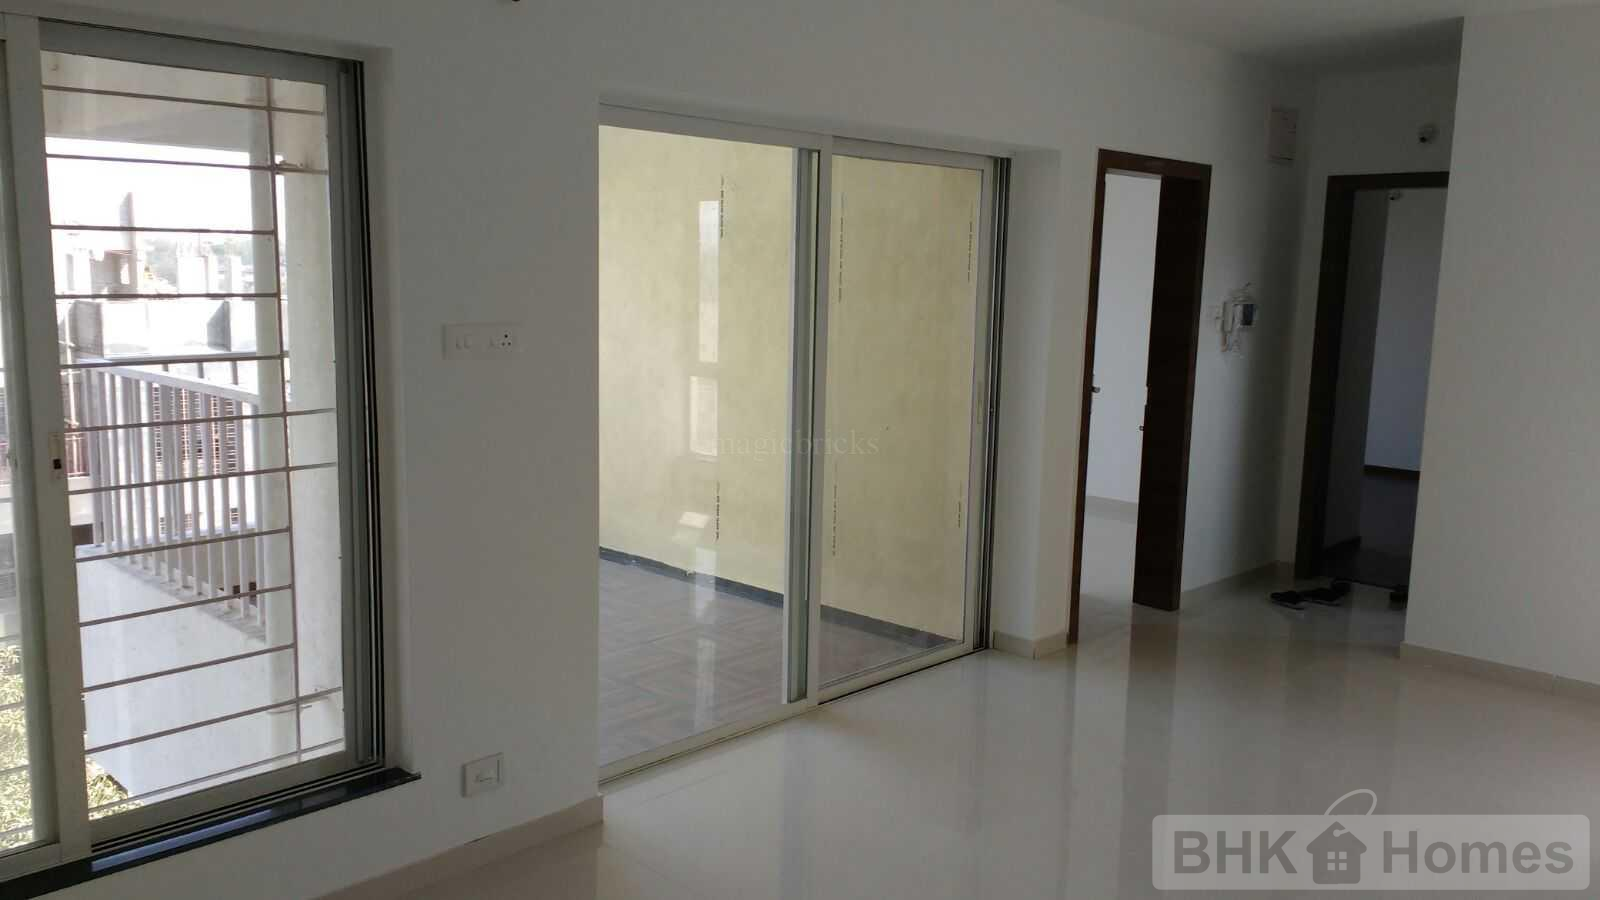 2 BHK Flat for sale in Vishrantwadi